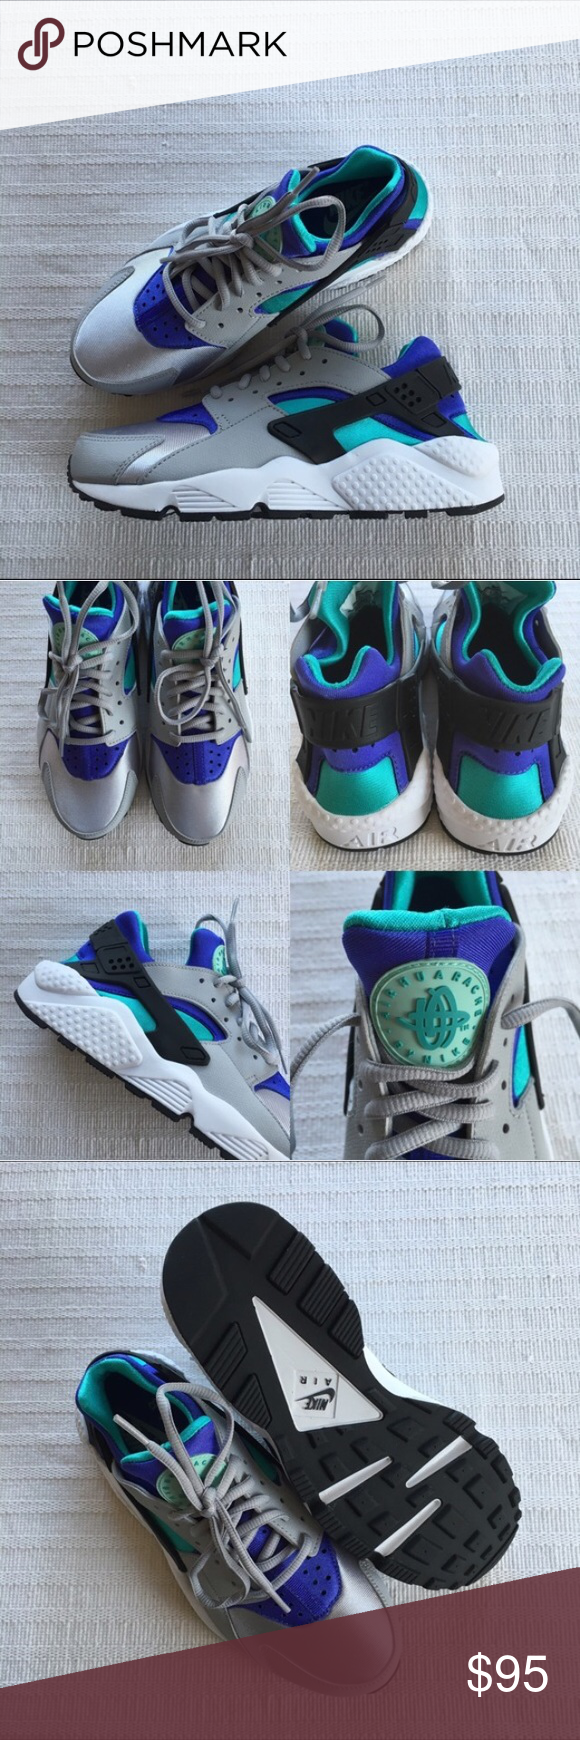 Women's Nike Air Huarache Sneakers